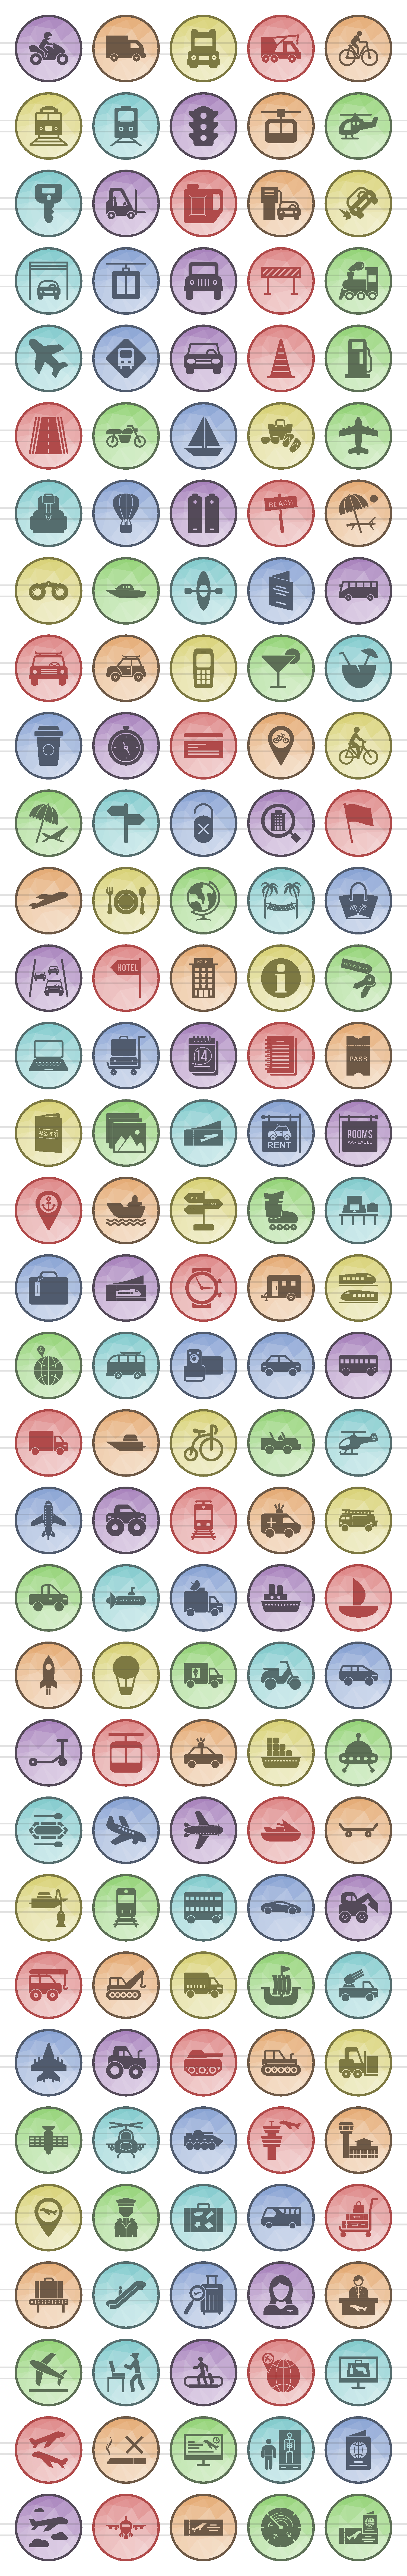 166 Transport Filled Low Poly Icons example image 2